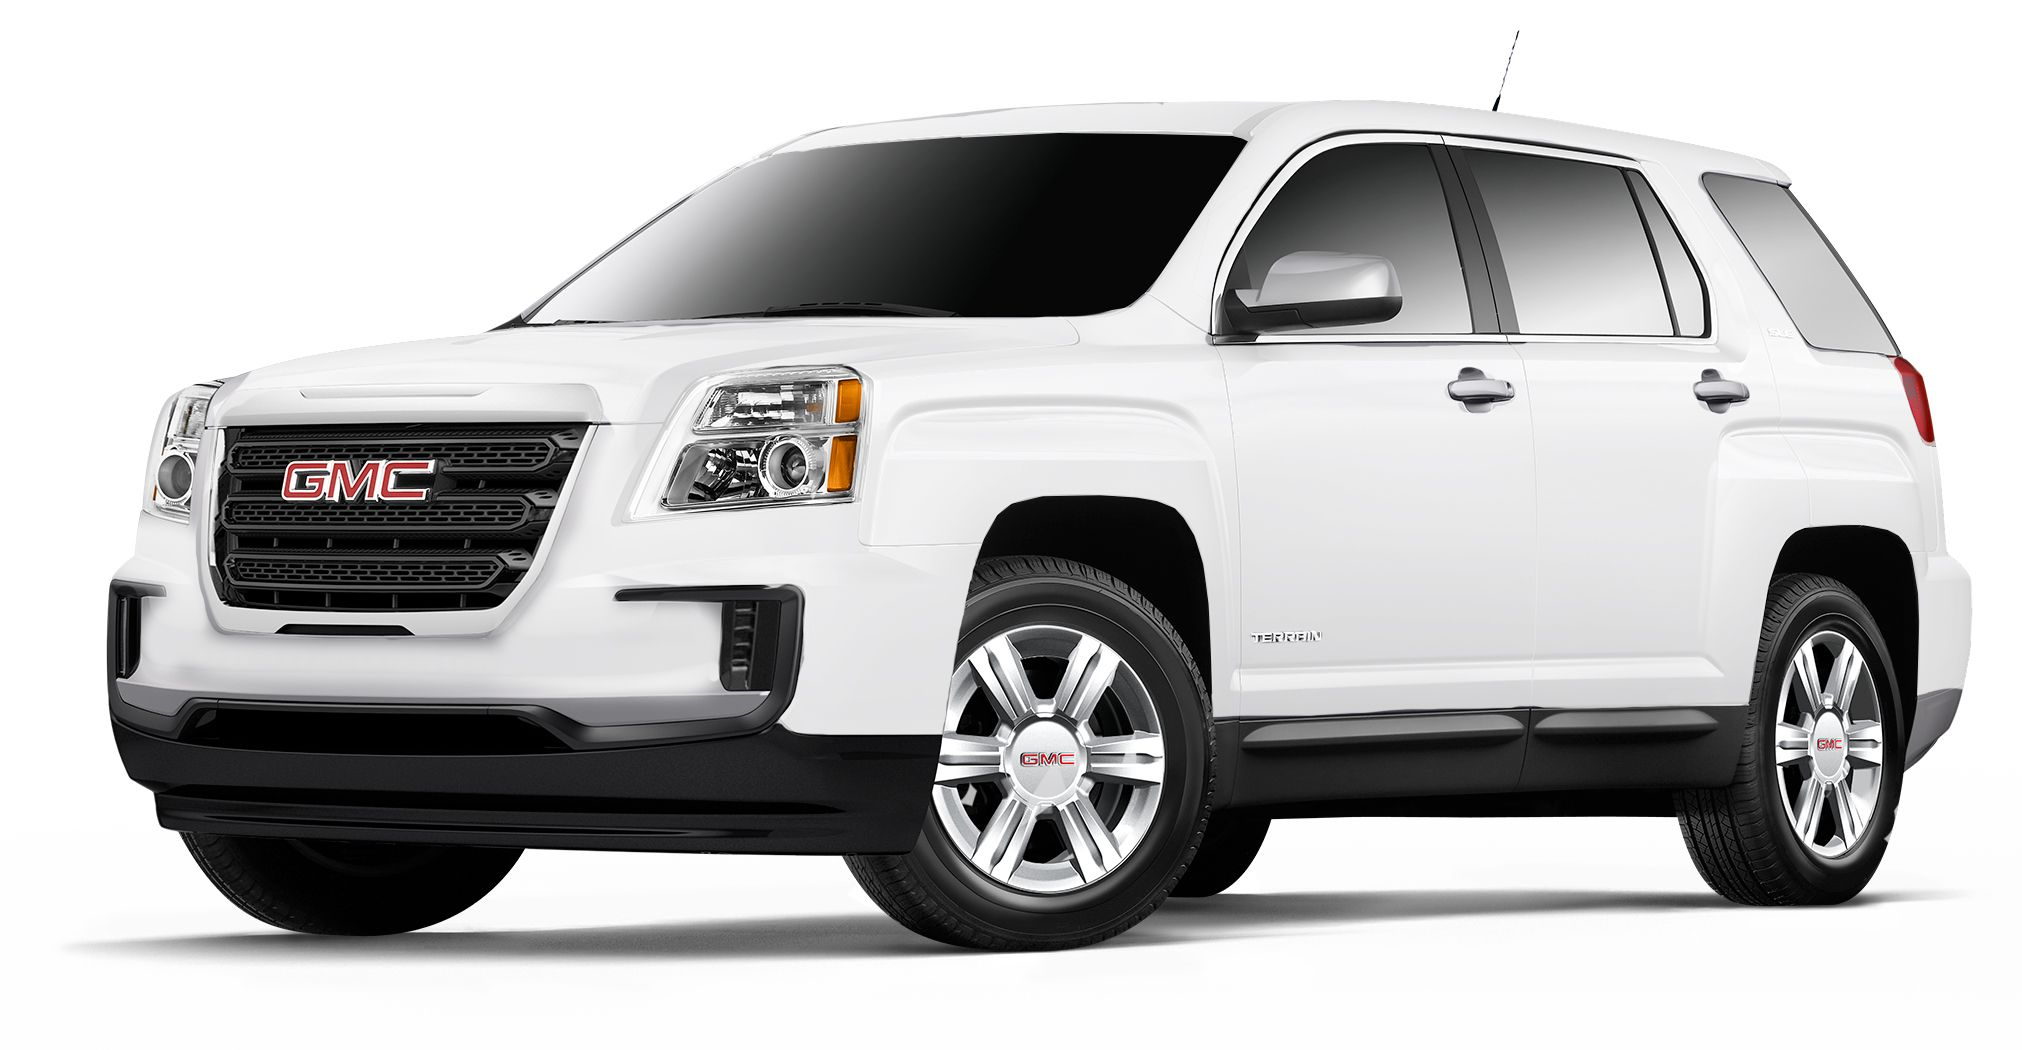 White 2017 Gmc Terrain Unless You The Square Wheel Well Then I Will Compromise With A 2018 Nissan Pathfinder